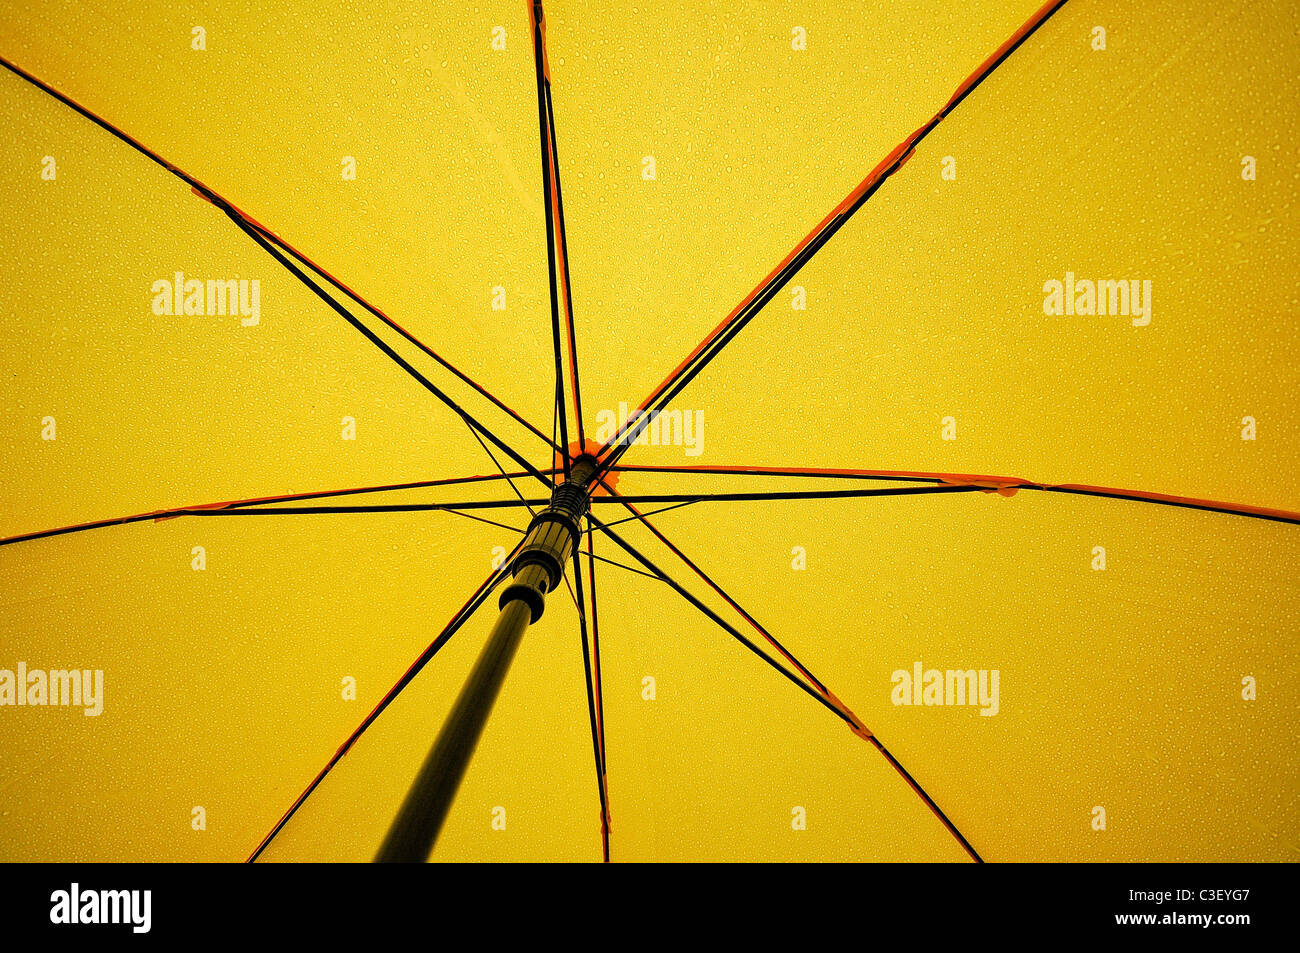 The under side of an open yellow umbrella, with rain drops seen through the material. - Stock Image